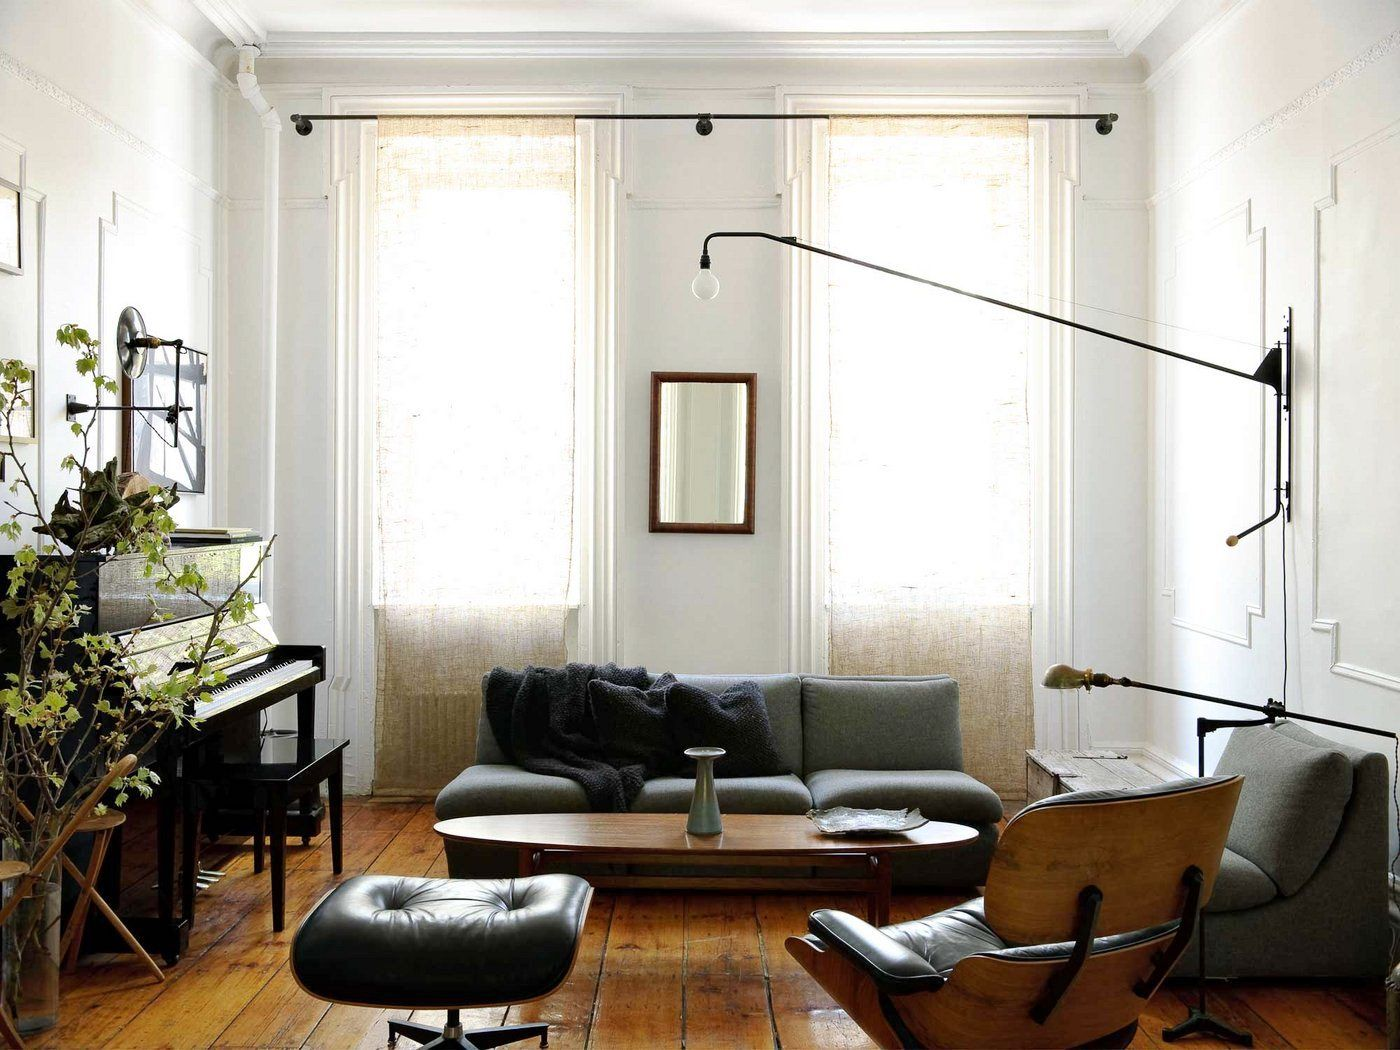 Expert Advice 11 Tips For Making A Room Look Bigger Remodelista Home Living Room Inspiration Mid Century Modern Interiors